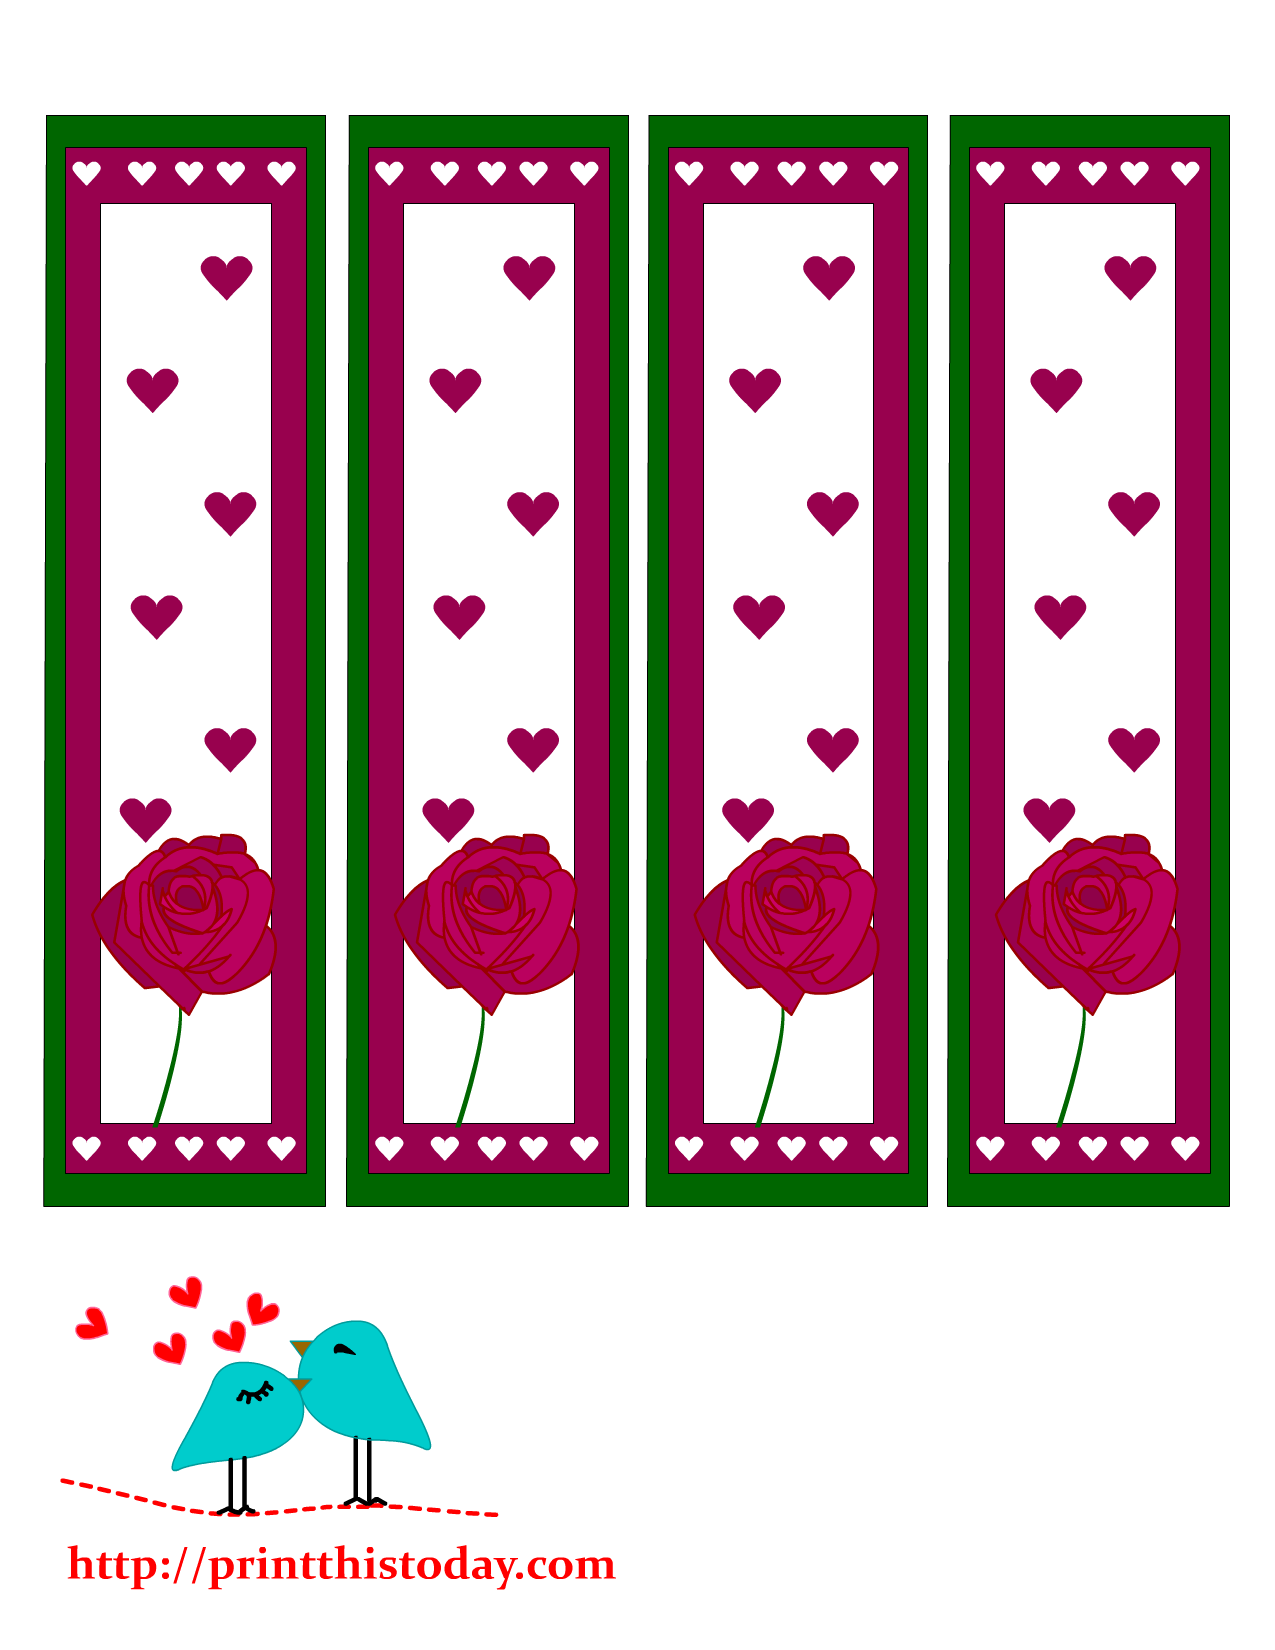 valentine bookmarks to color : Valentine Day Bookmarks Featuring Rose And Hearts